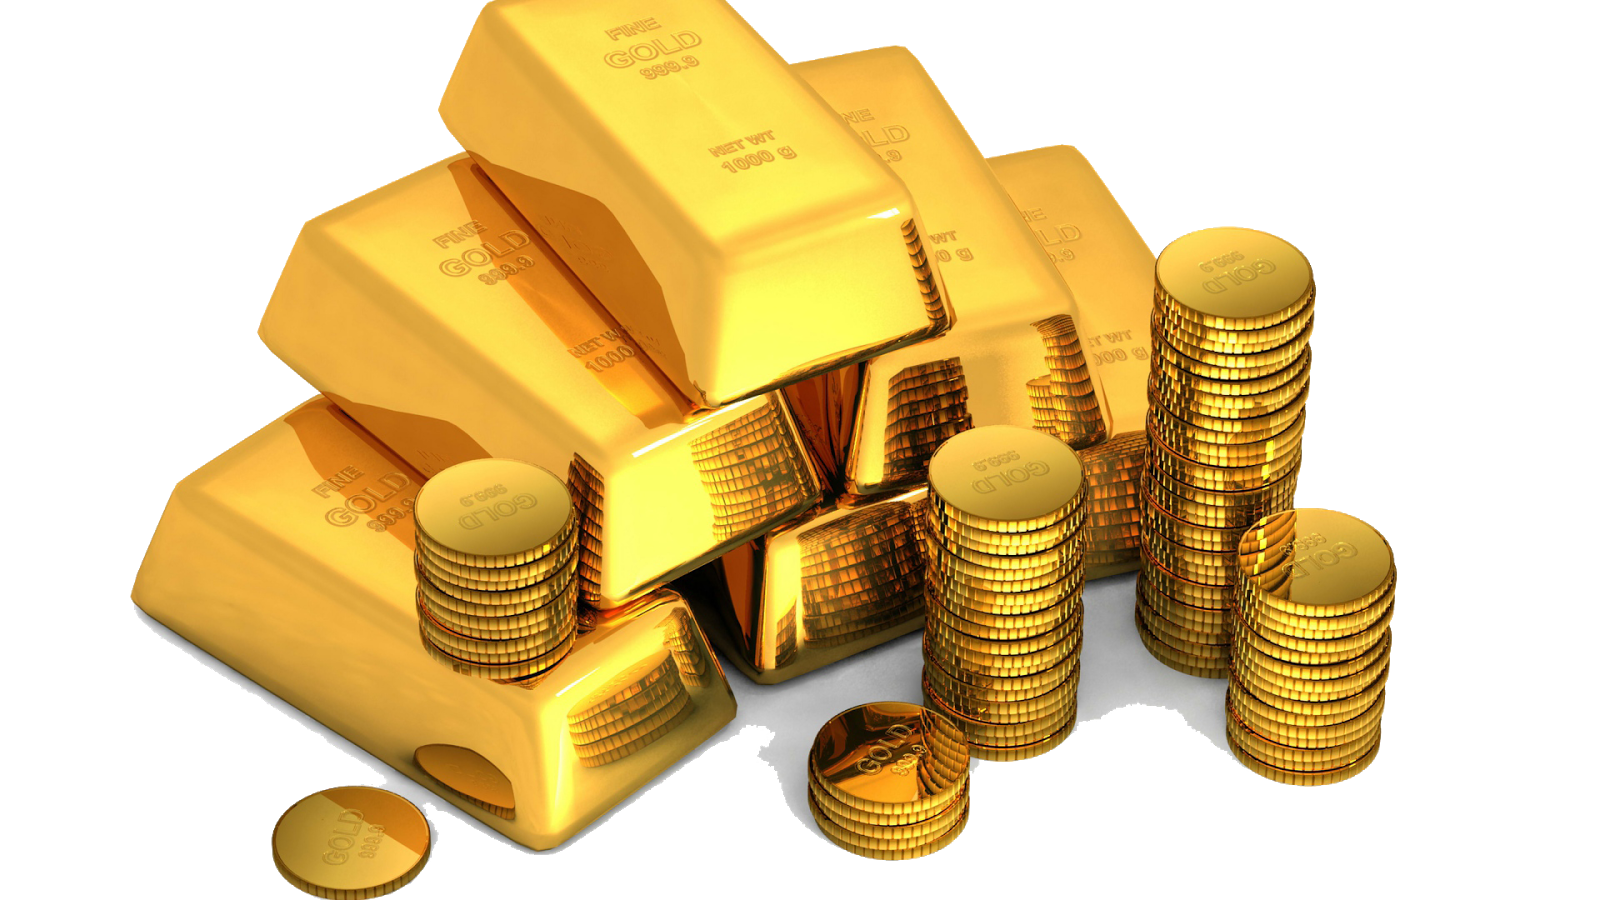 Pin By Capital Pride Investment Advis On Http Capitalpride In Gold Stock Buying Gold Gold Bullion Bars